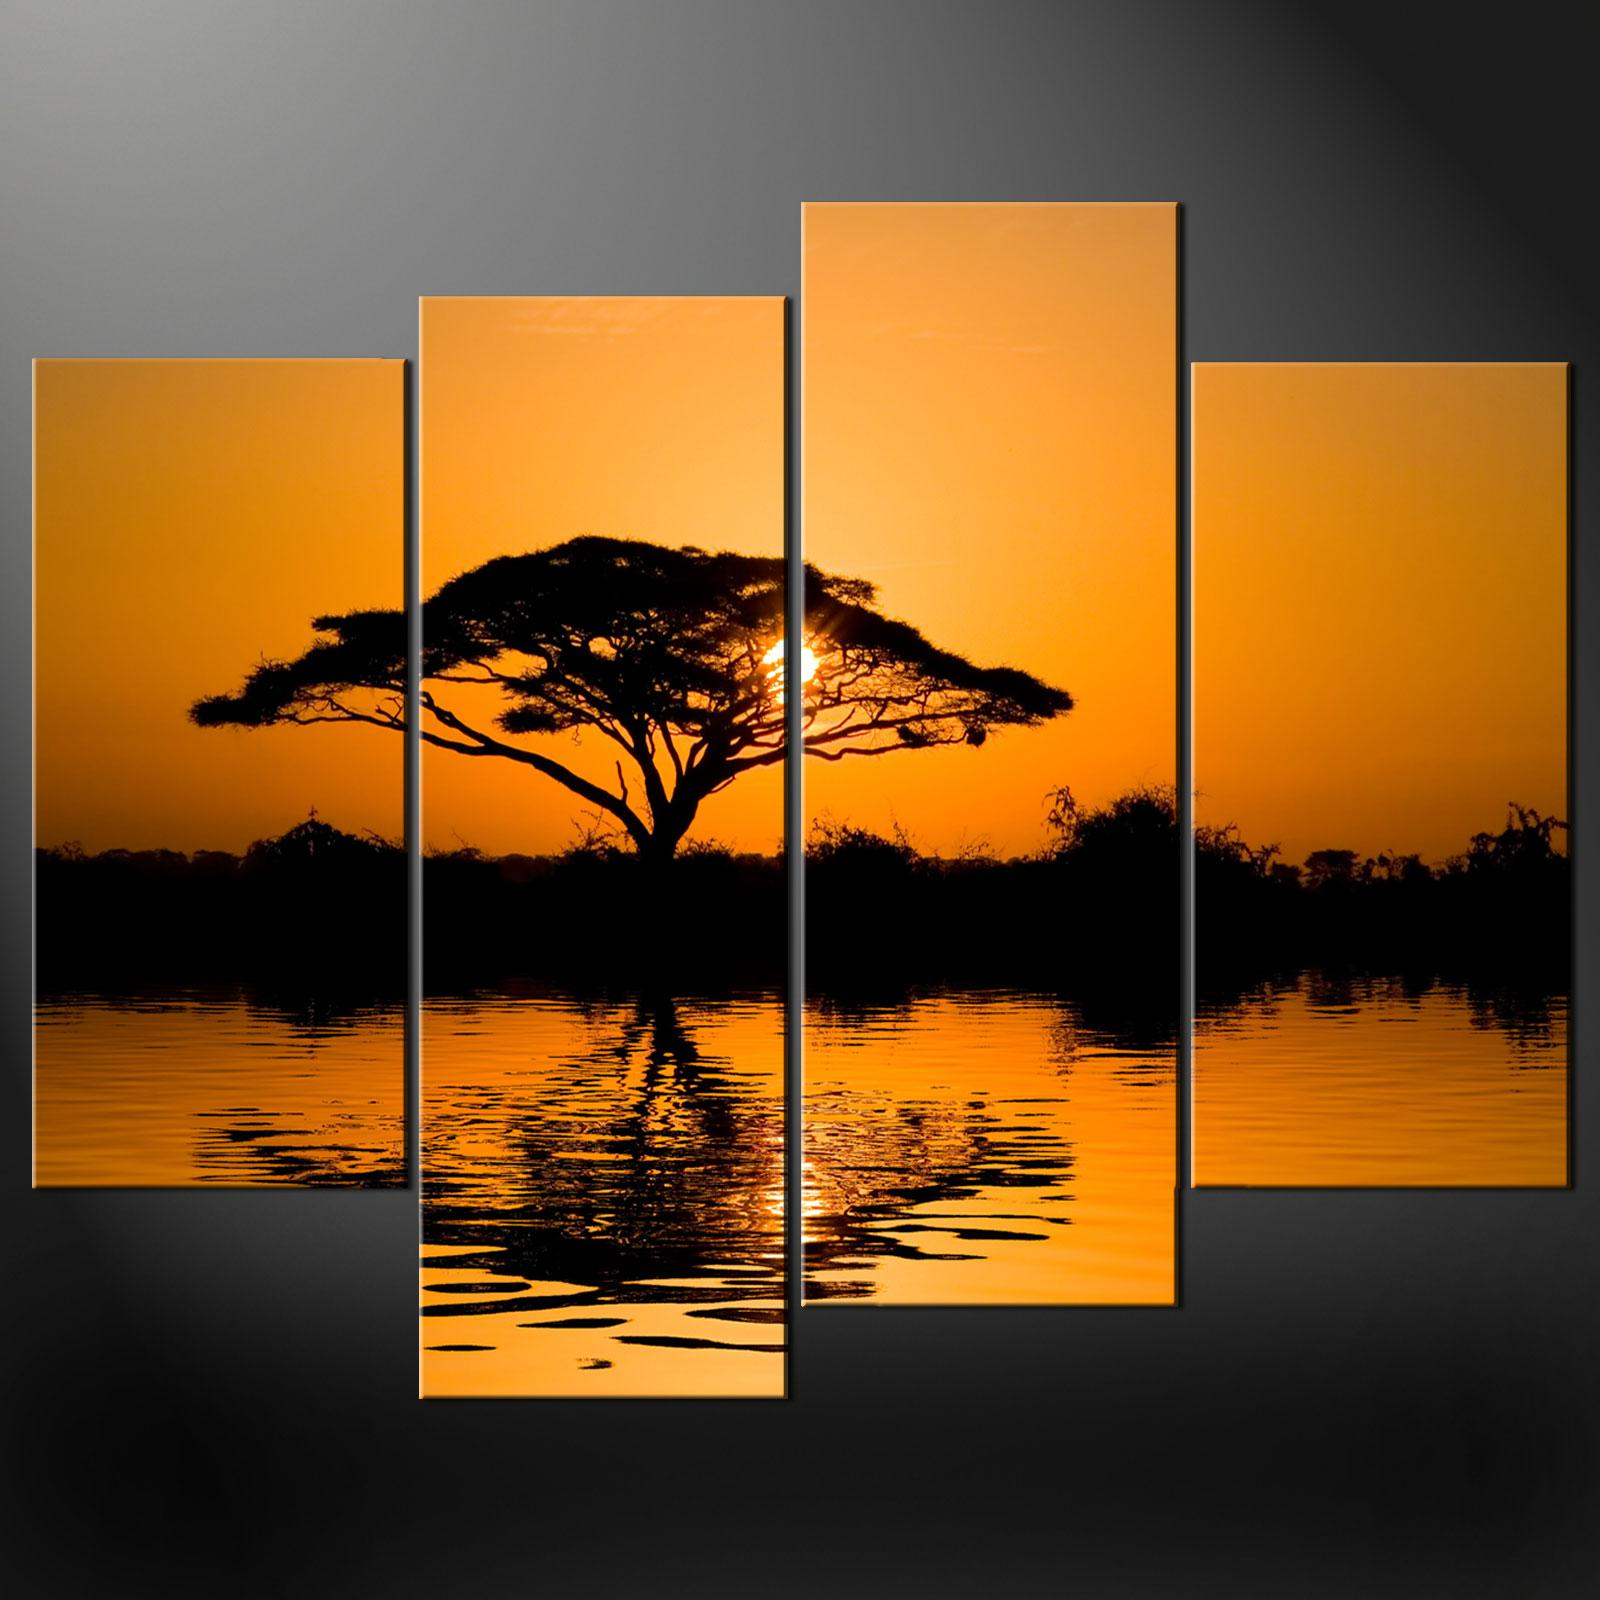 Framed 4 panel large african wall art decor modern sunset oil painting beach picture home decor xd01886 african wall art decor canvas art picture online